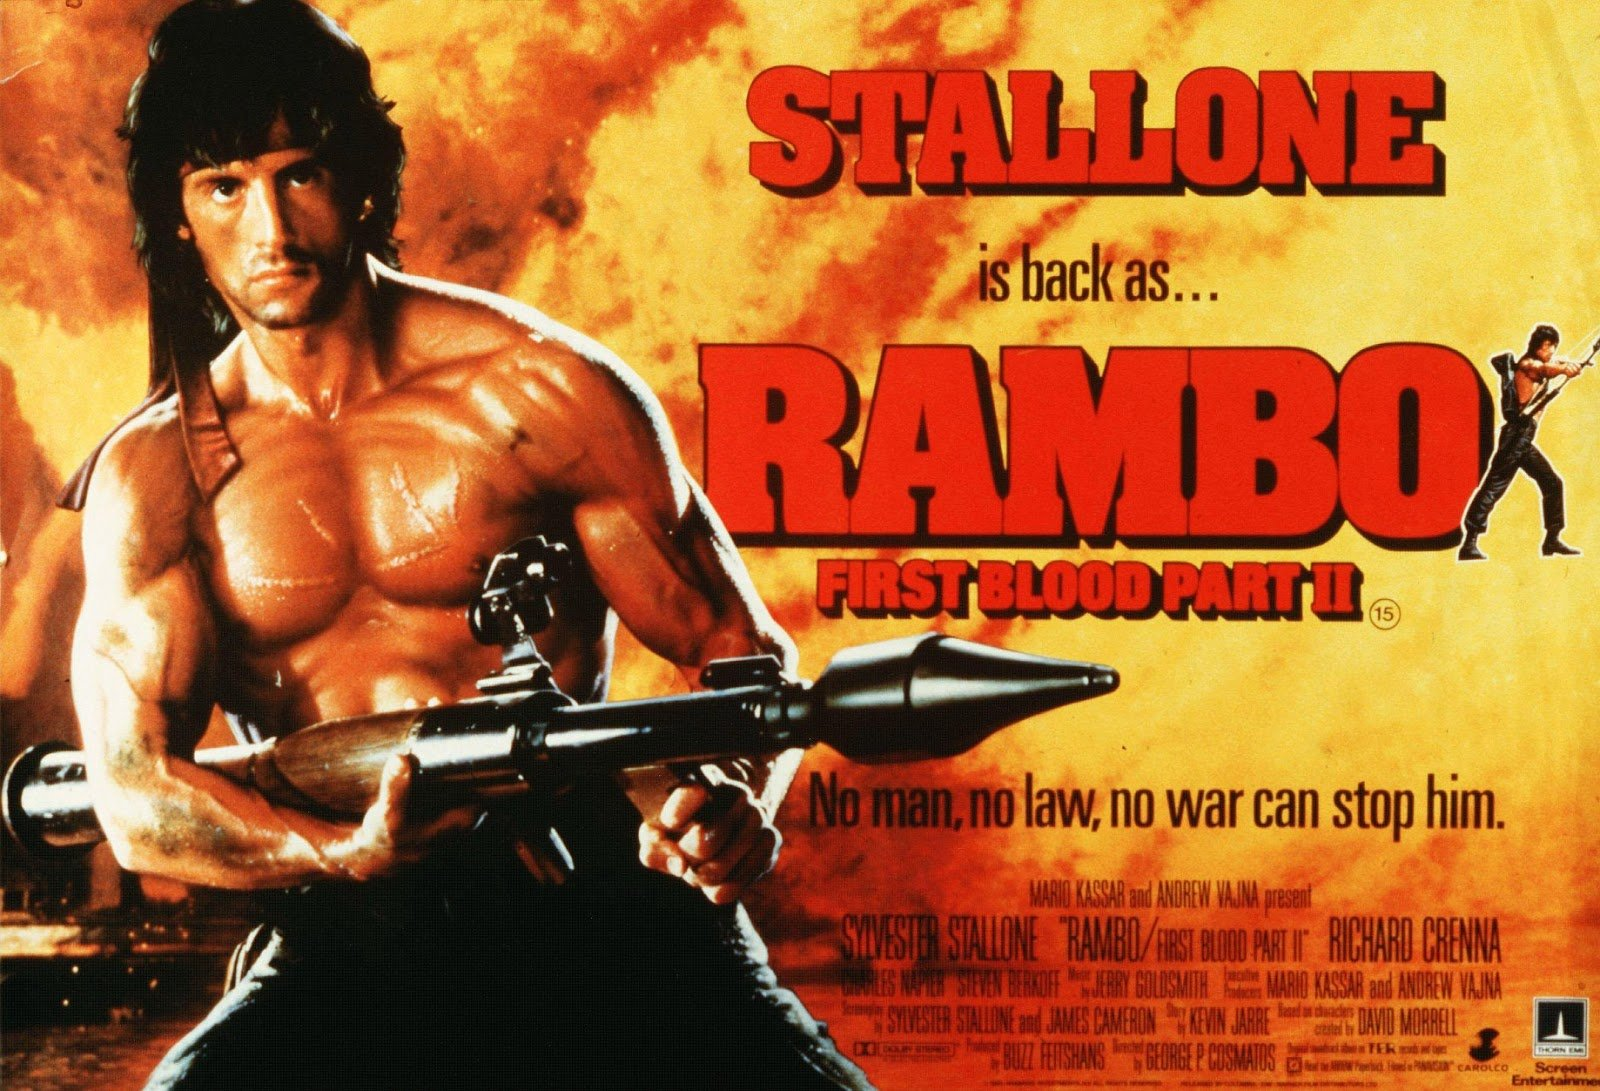 rambo 1 20 Things You Probably Didn't Know About Commando